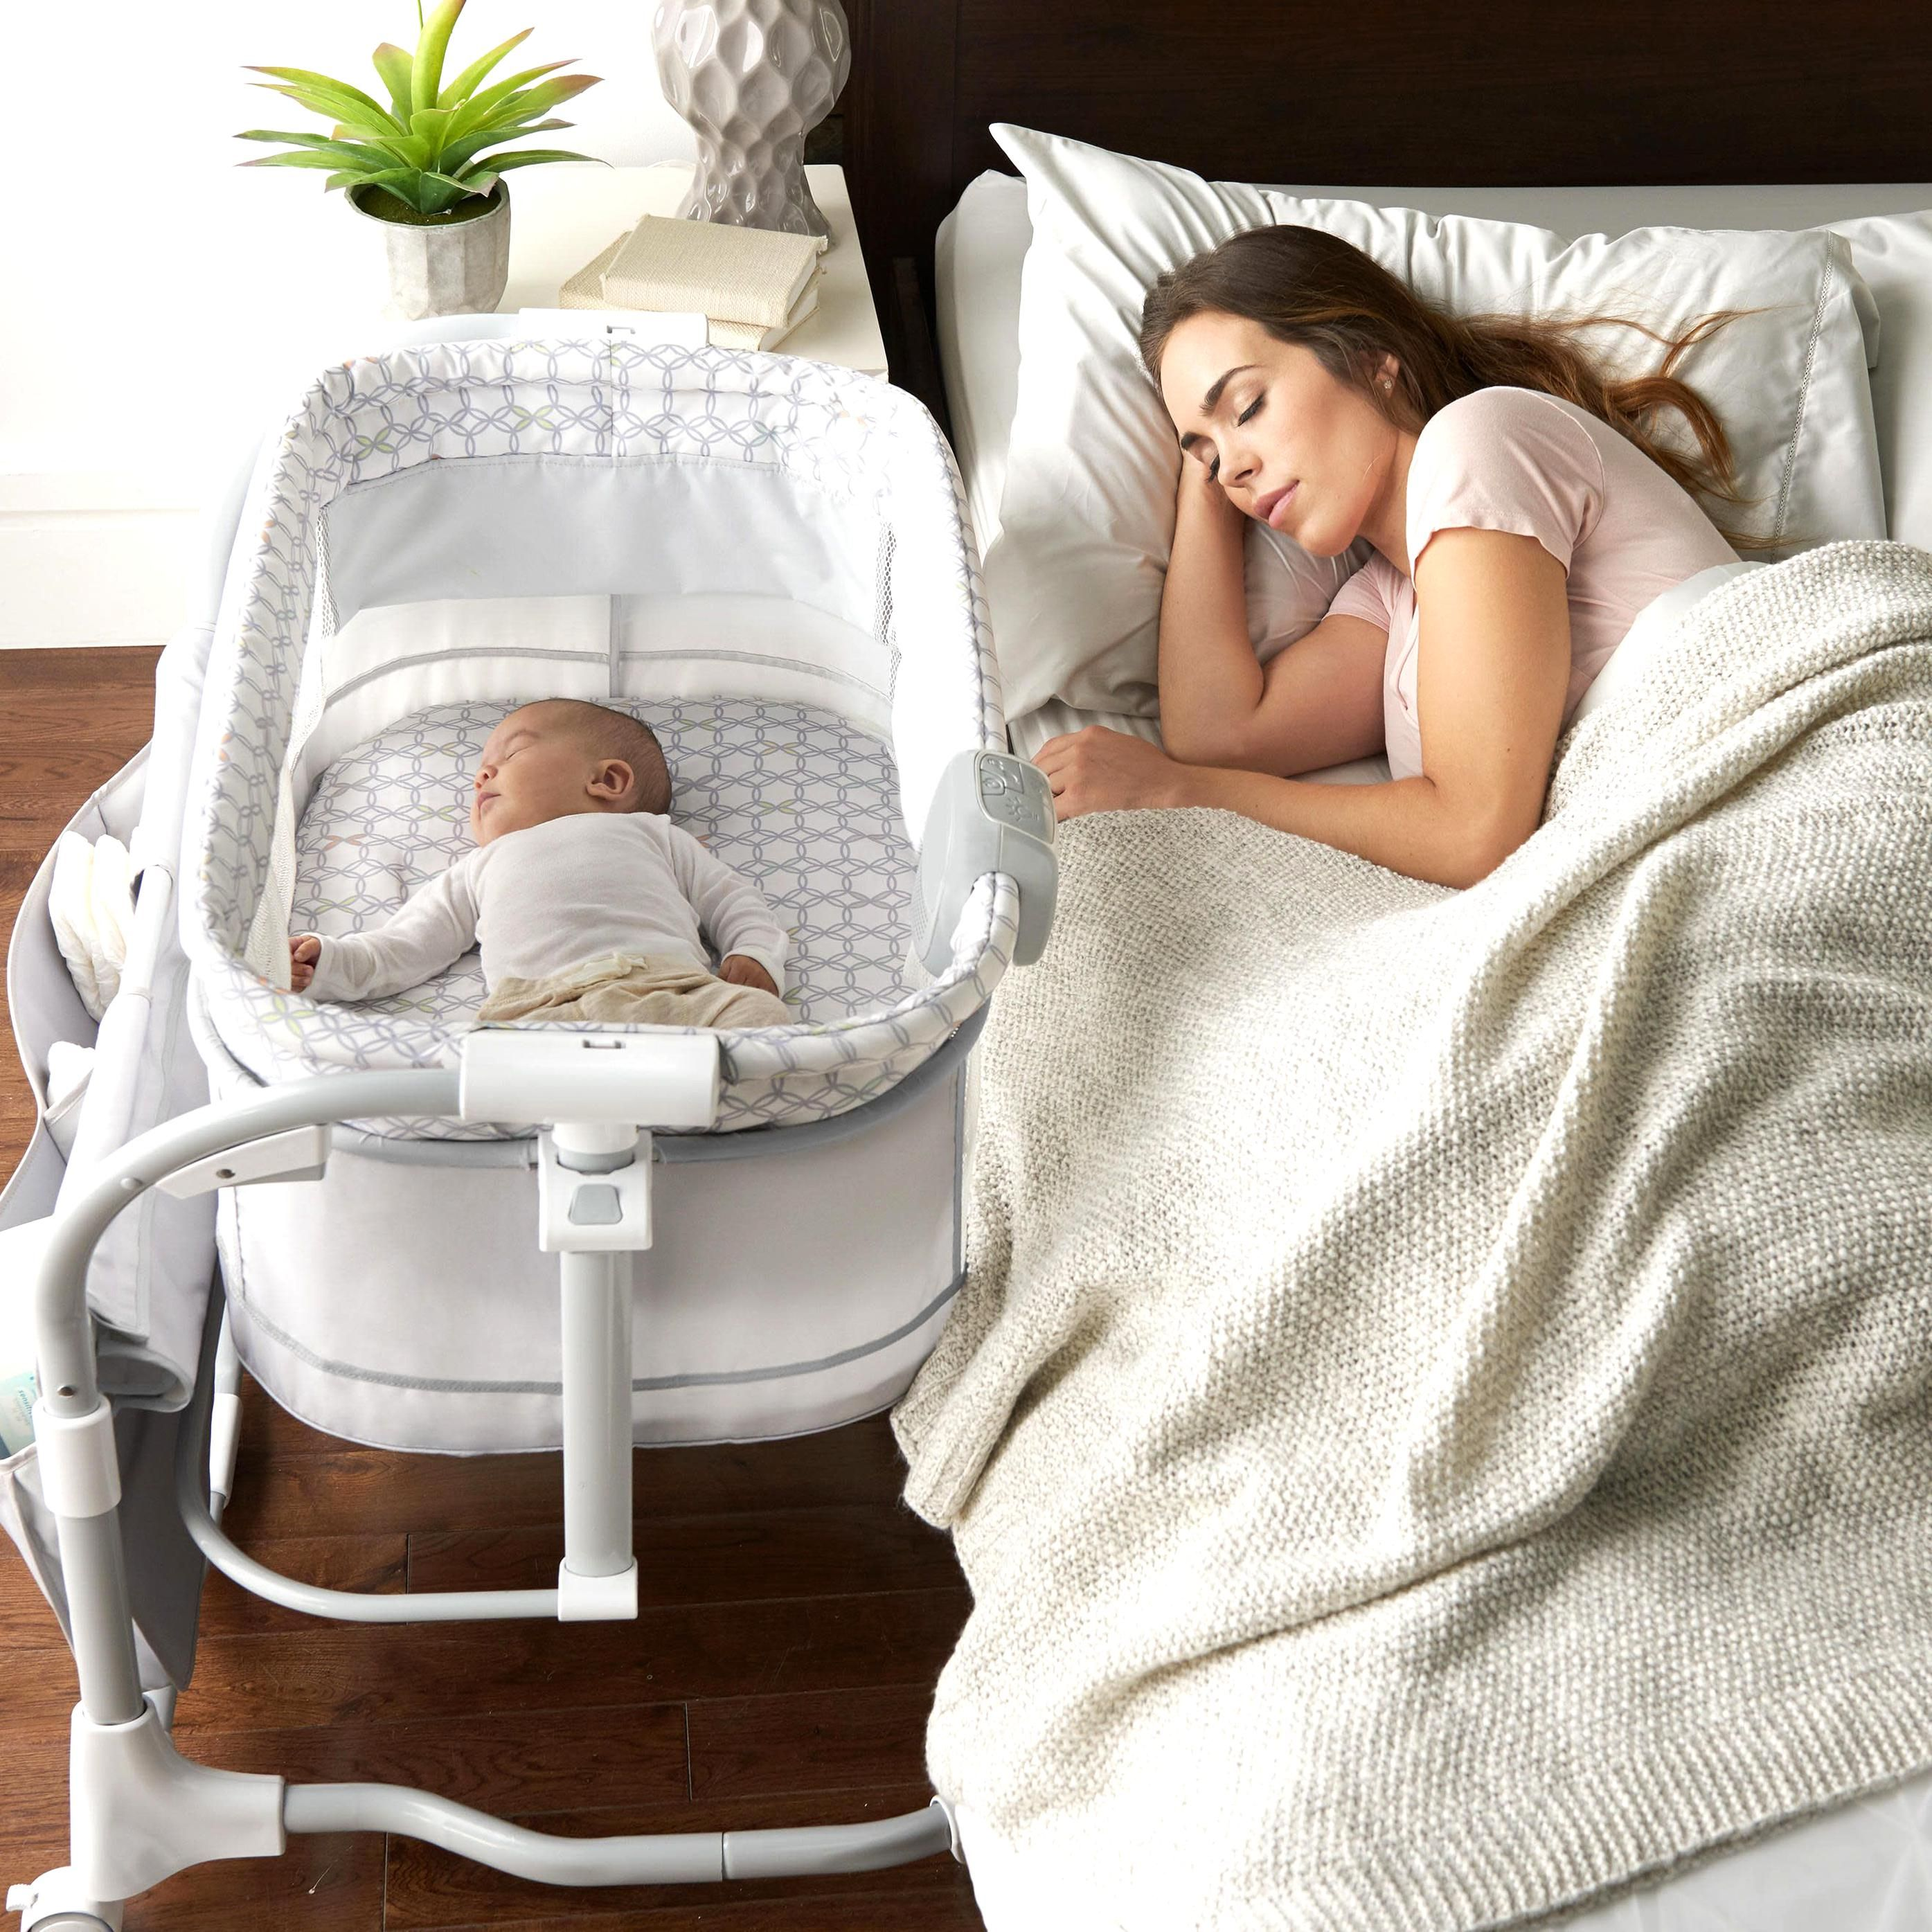 Pin By Kierra Miracle On My Beautiful Collections In 2020 Baby Bassinet Baby Cribs Bedside Bassinet